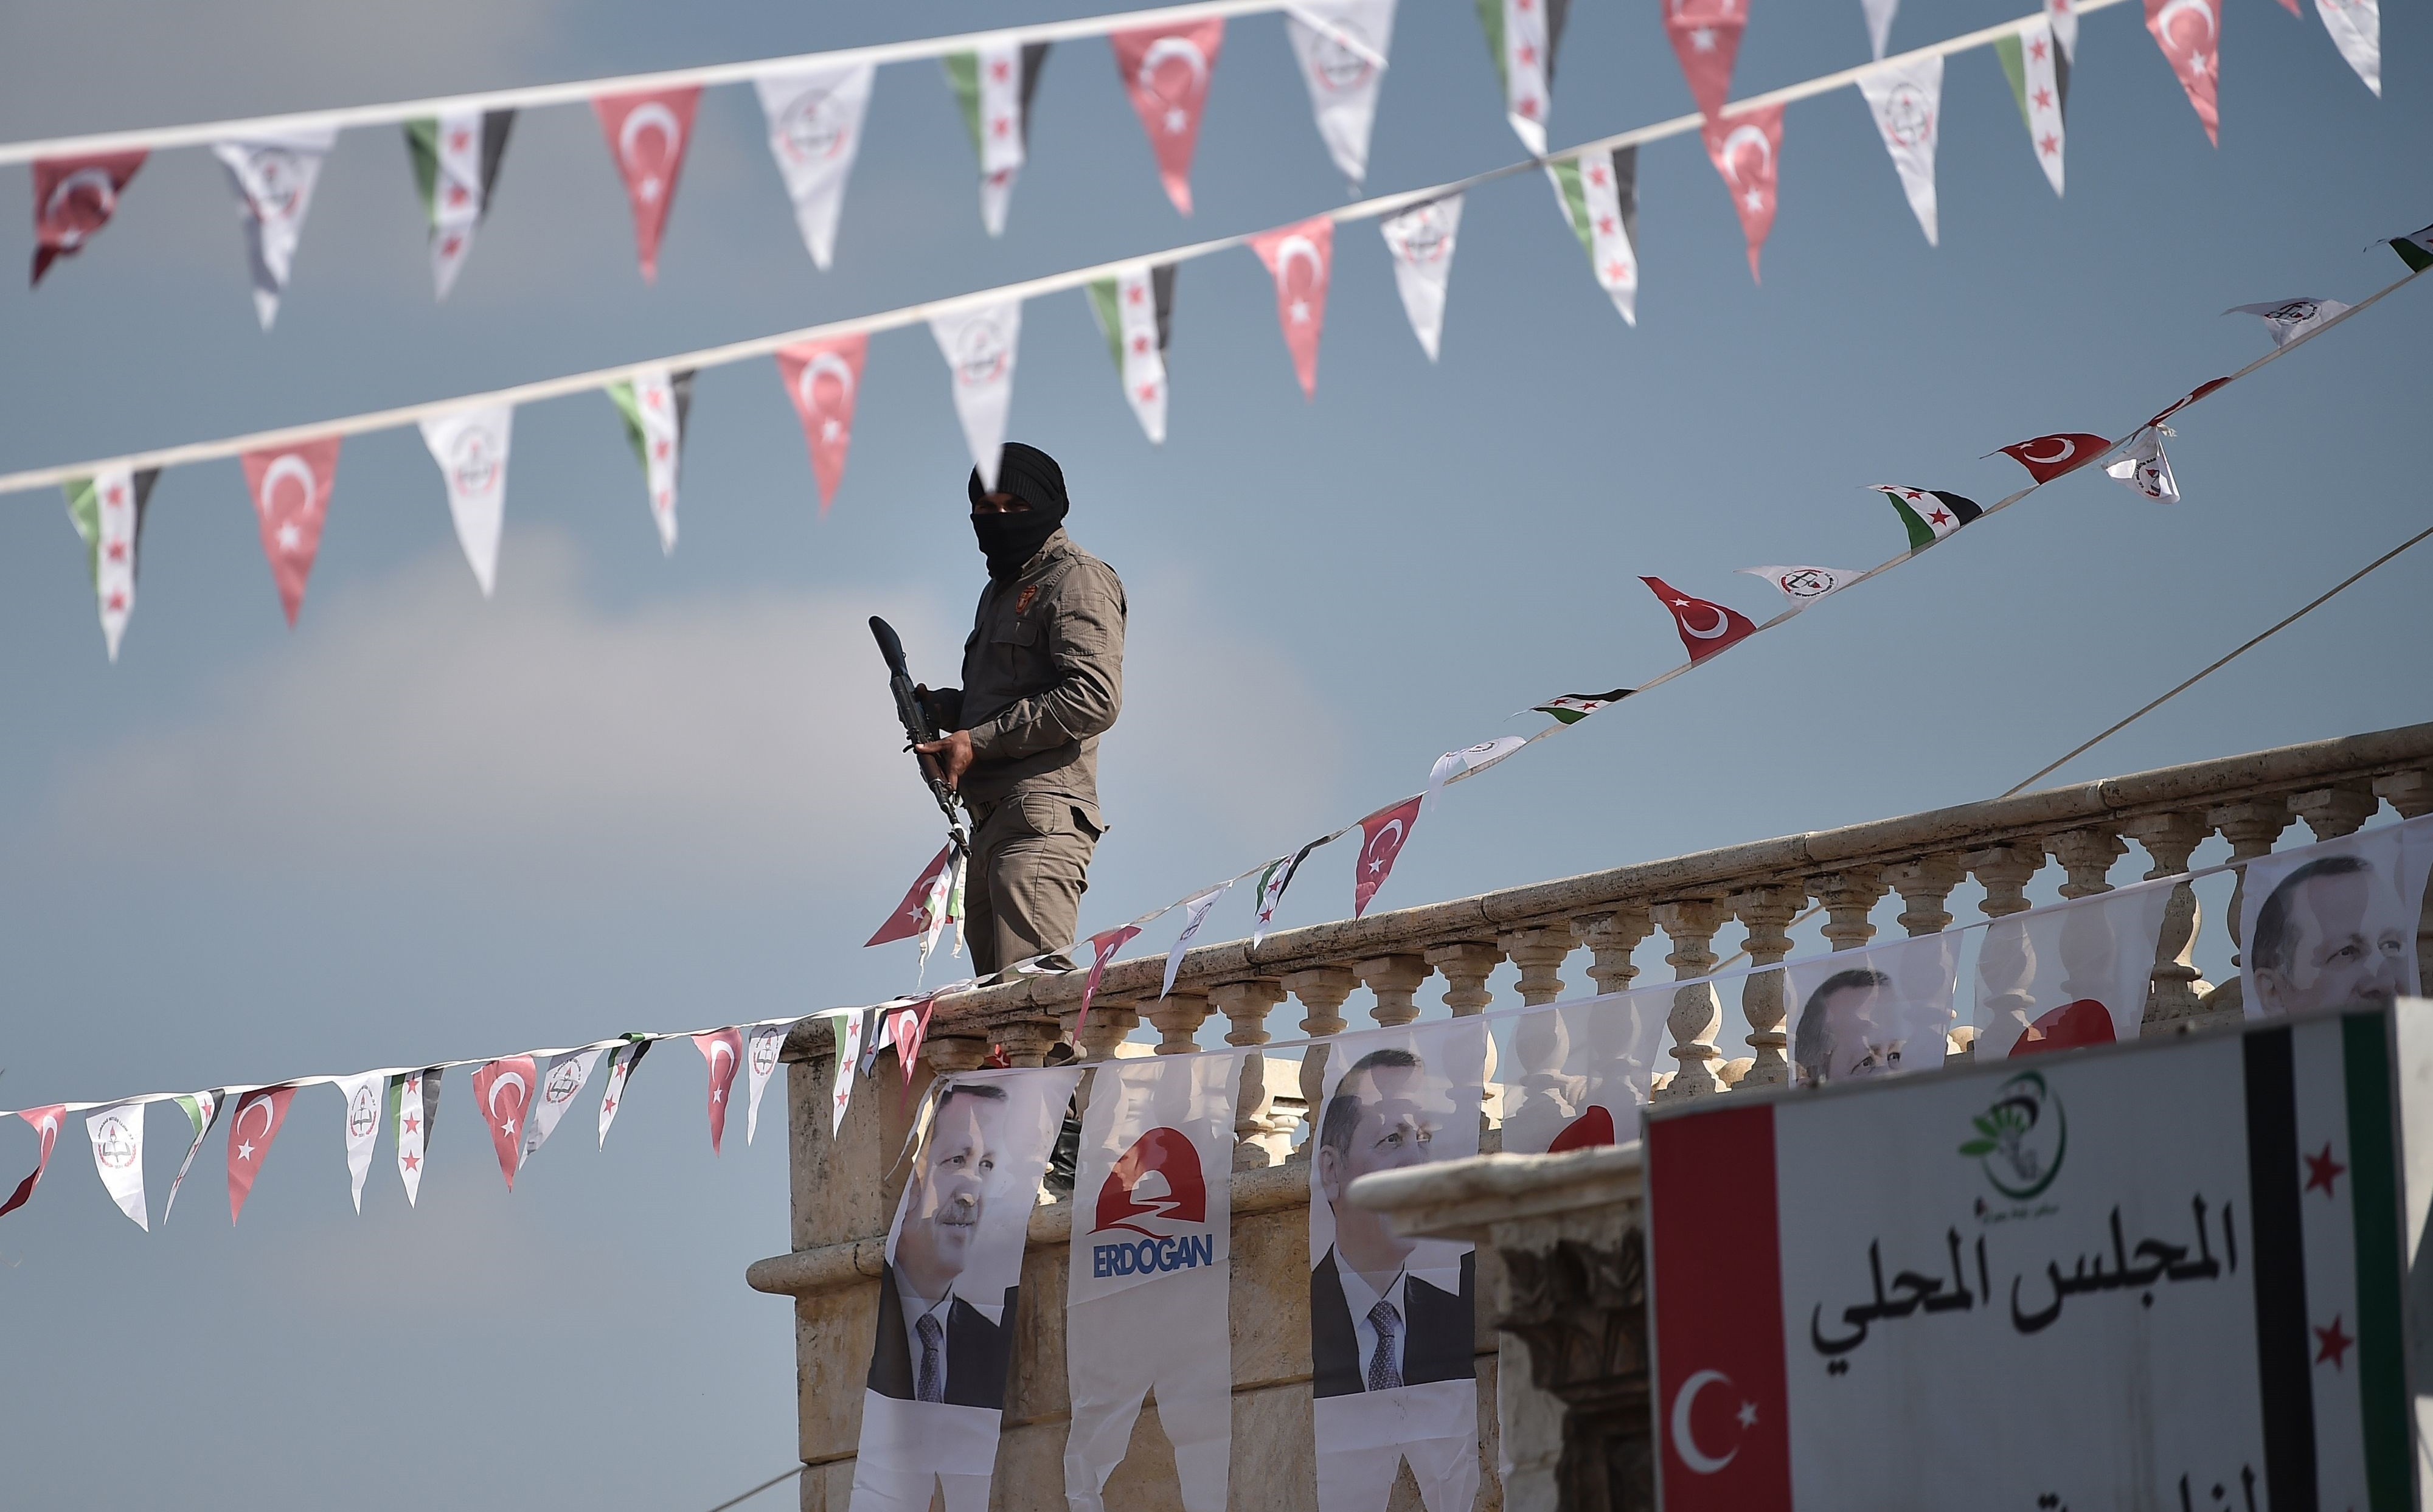 A Turkish-backed Syrian opposition fighter stands on a rooftop in Suran, Syria decorated with posters of Turkey President Recep Tayyip Erdogan. File photo: Ozan Kose / AFP